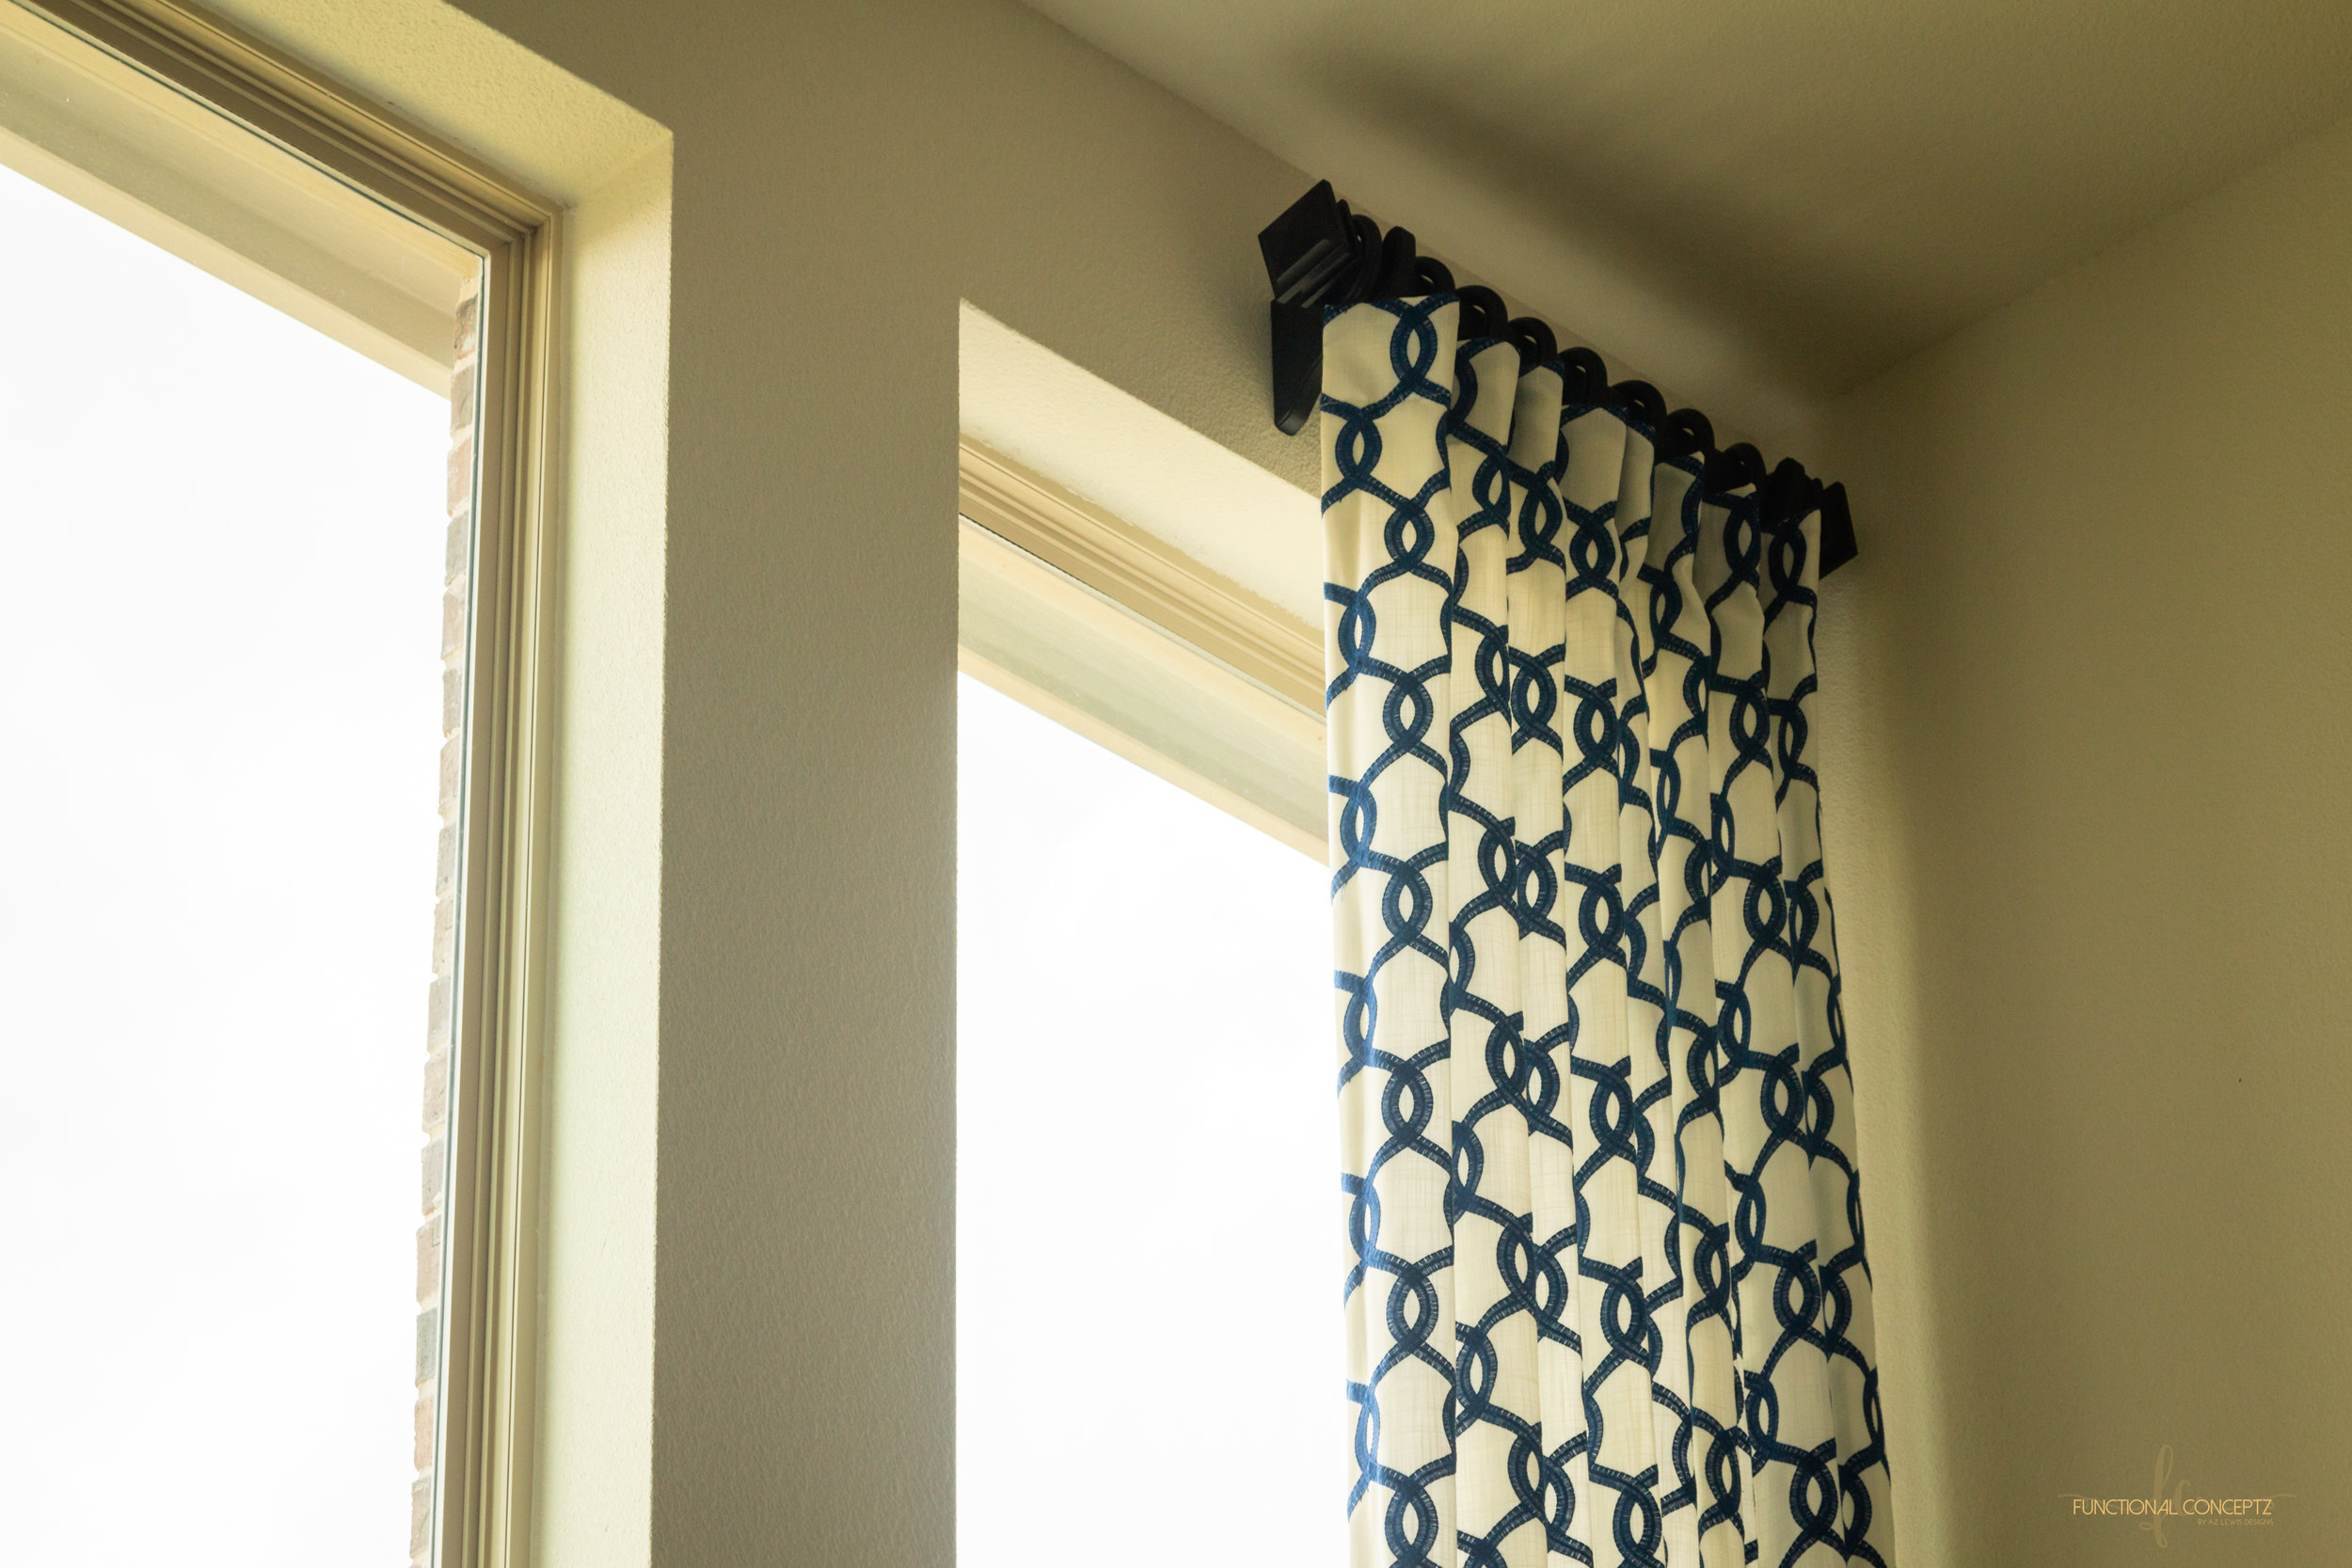 Custom Window Treatments - Curtains and draperies will make or break your space. We review a wide selection of designs to choose one thats perfect for you.